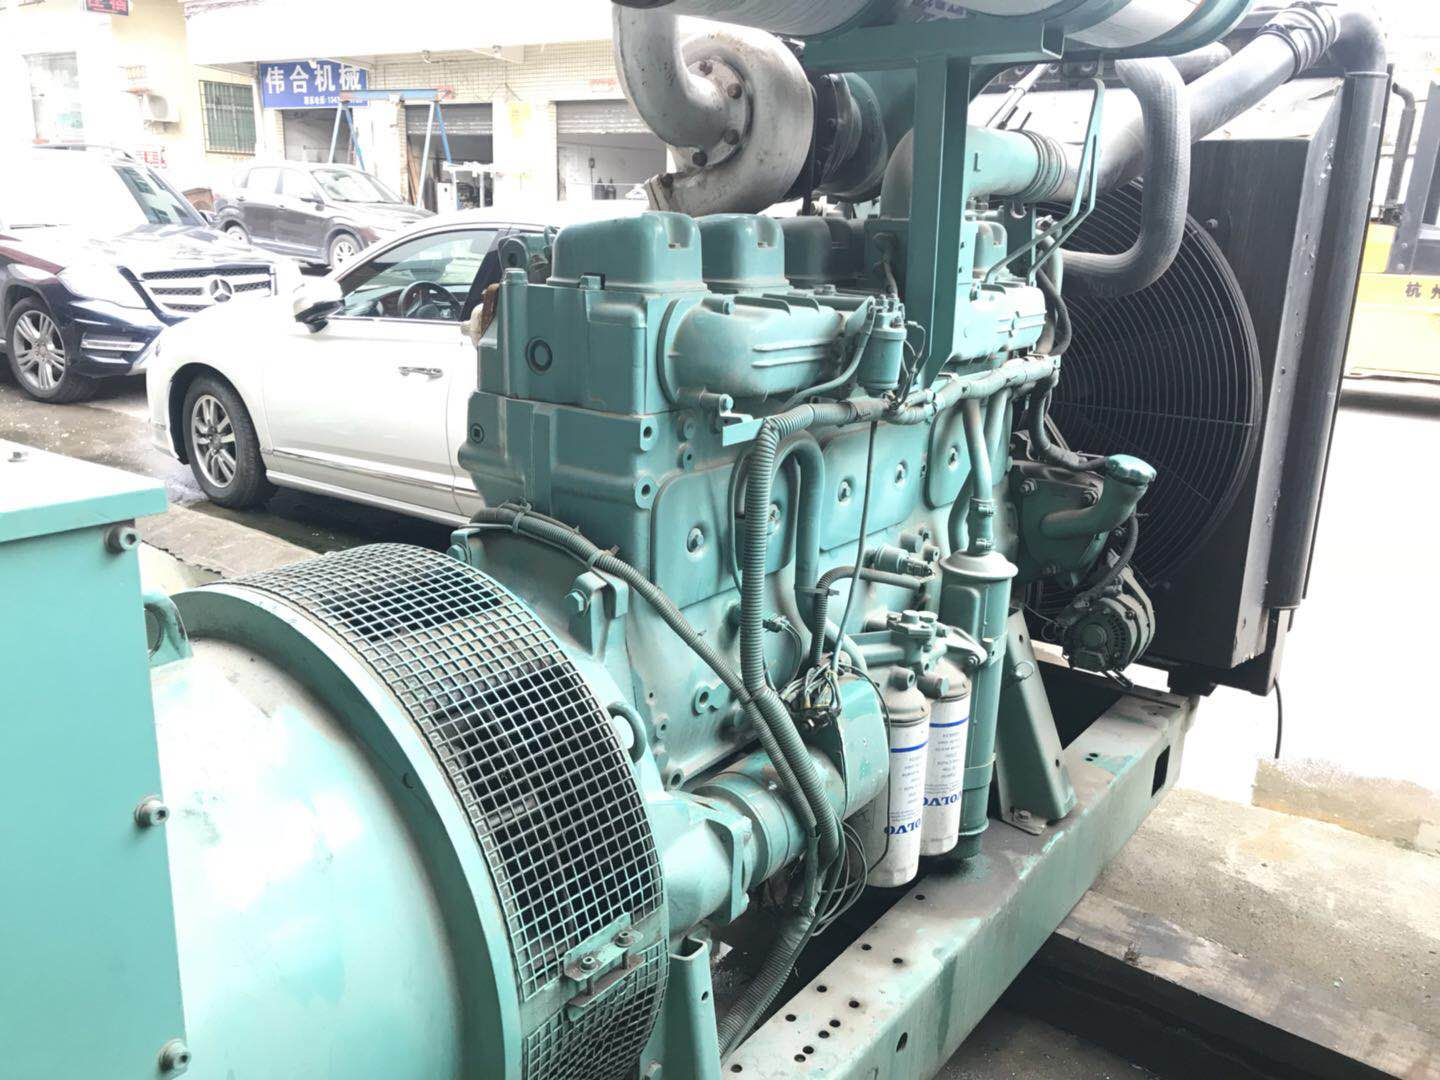 Swedish Volvo Diesel Generator Set - buying leads